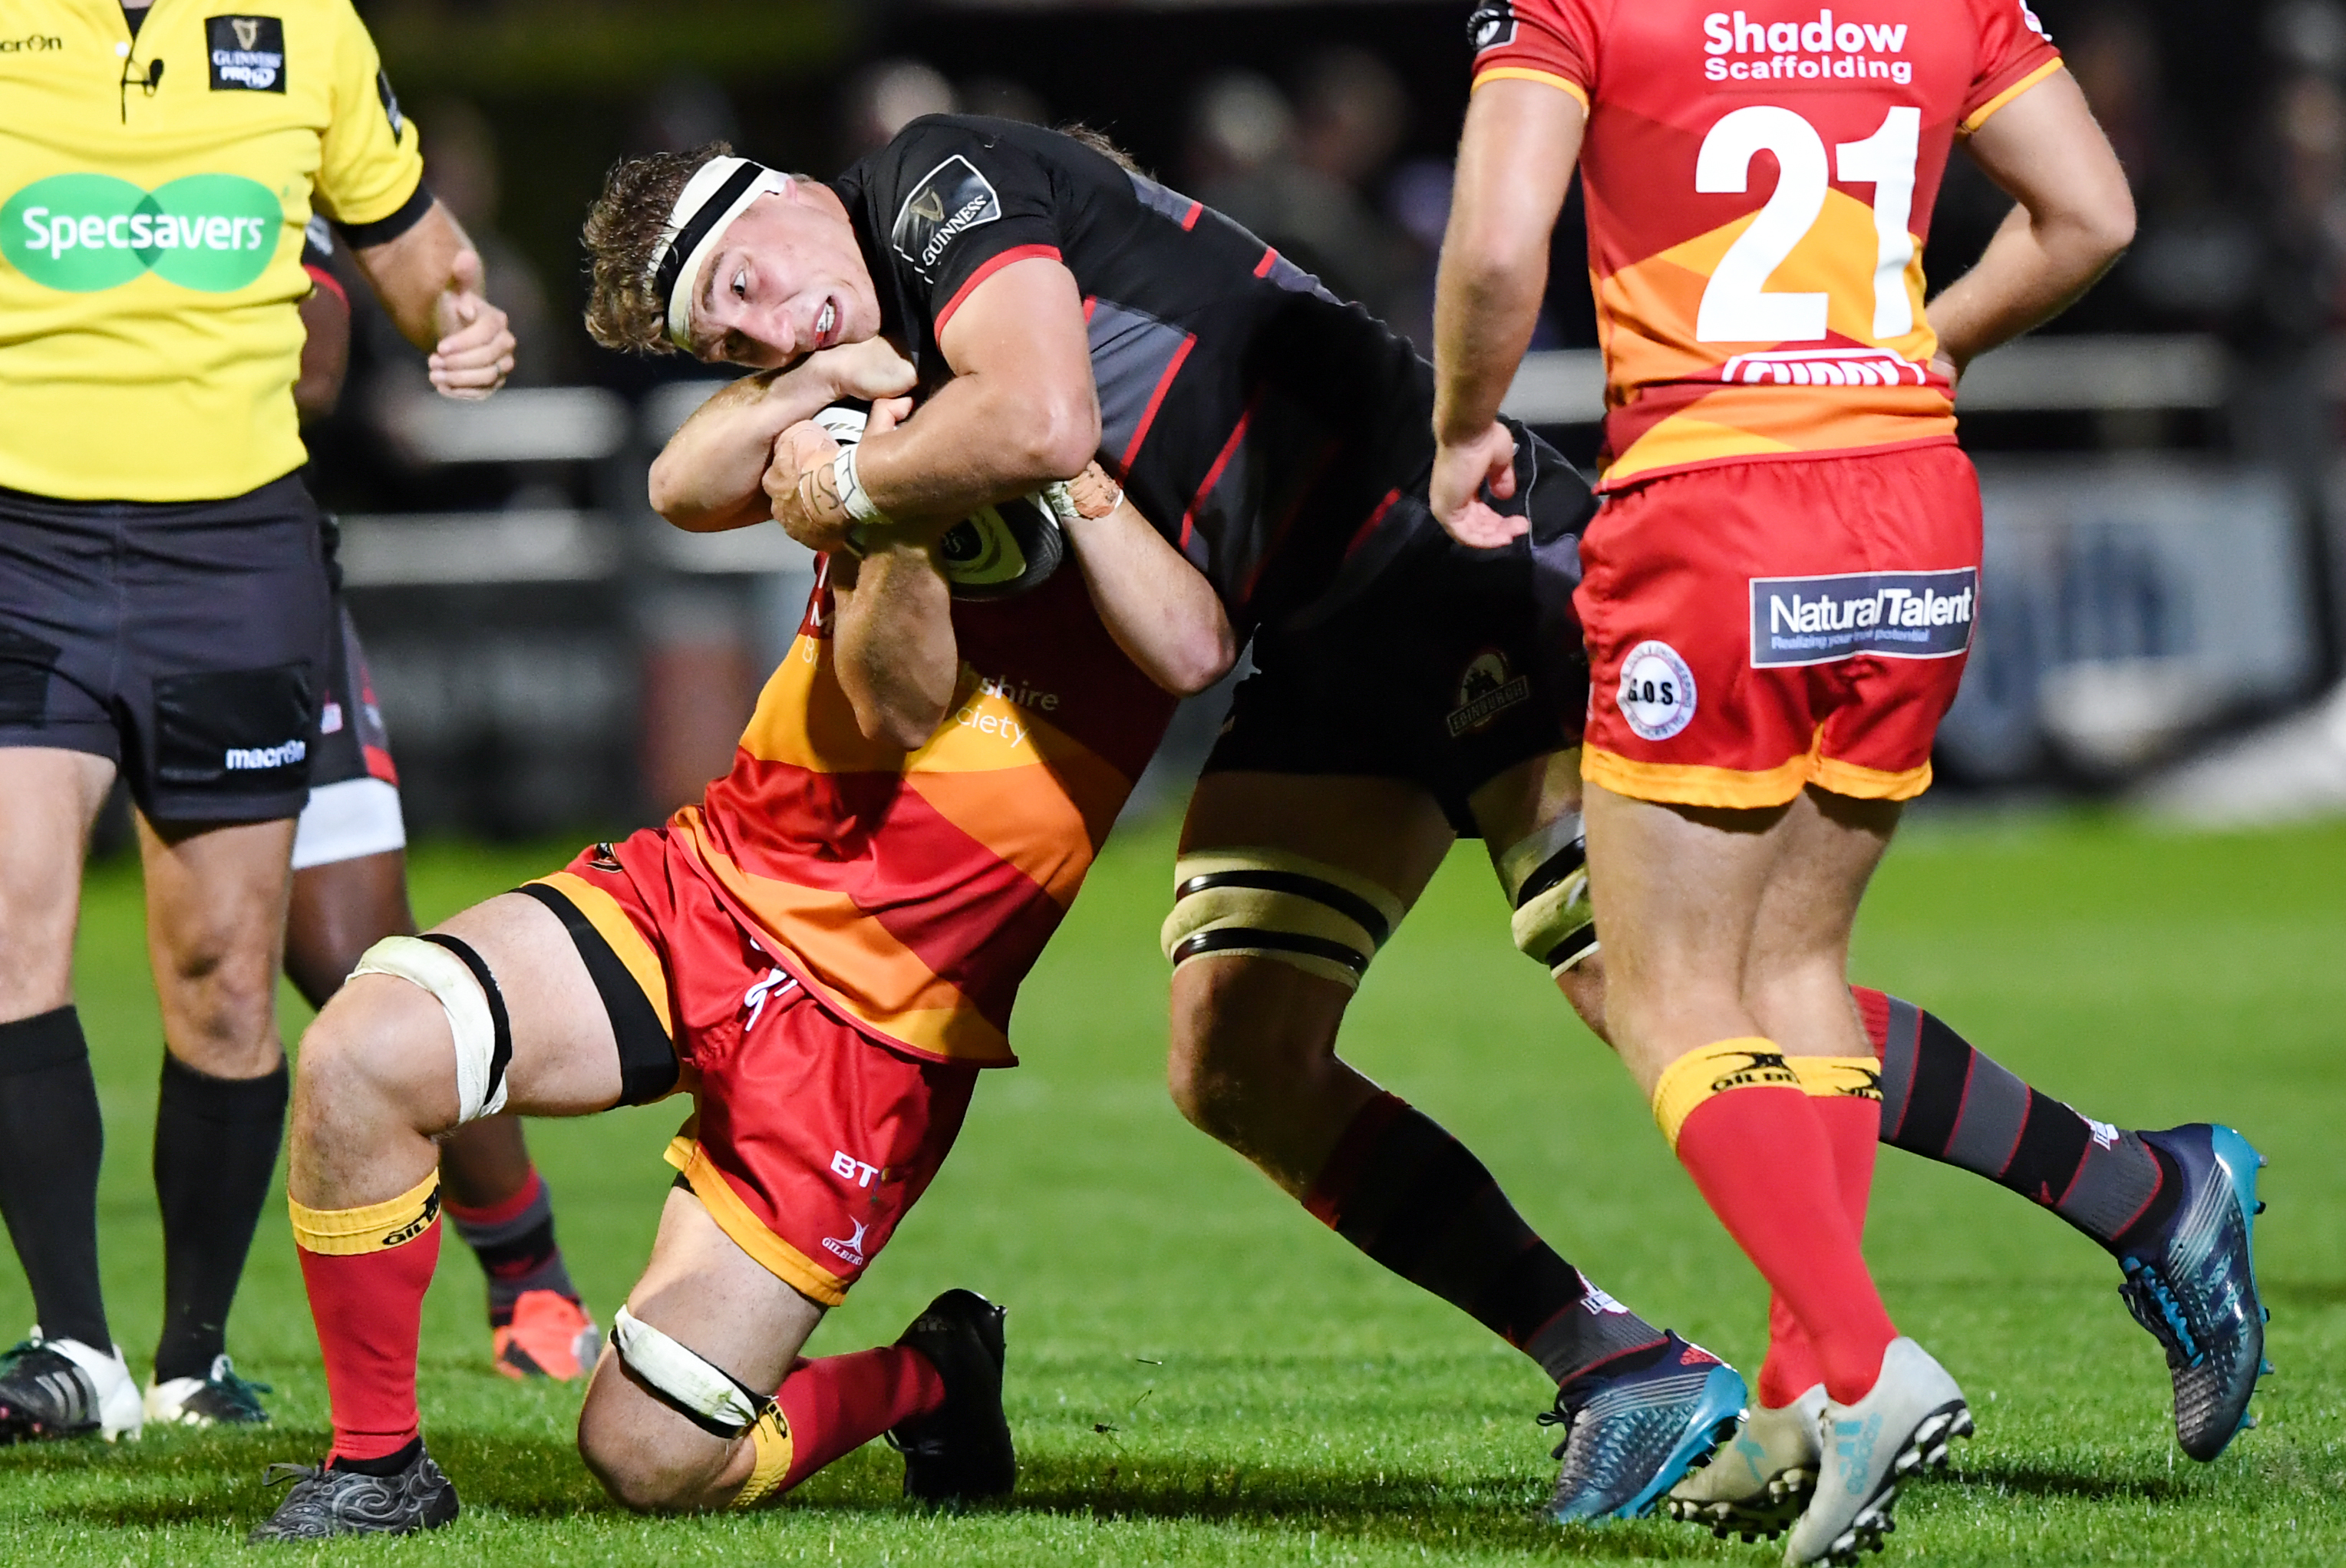 Jamie Ritchie is being rested after two outstanding performances to start Edinburgh's PRO14 campaign.